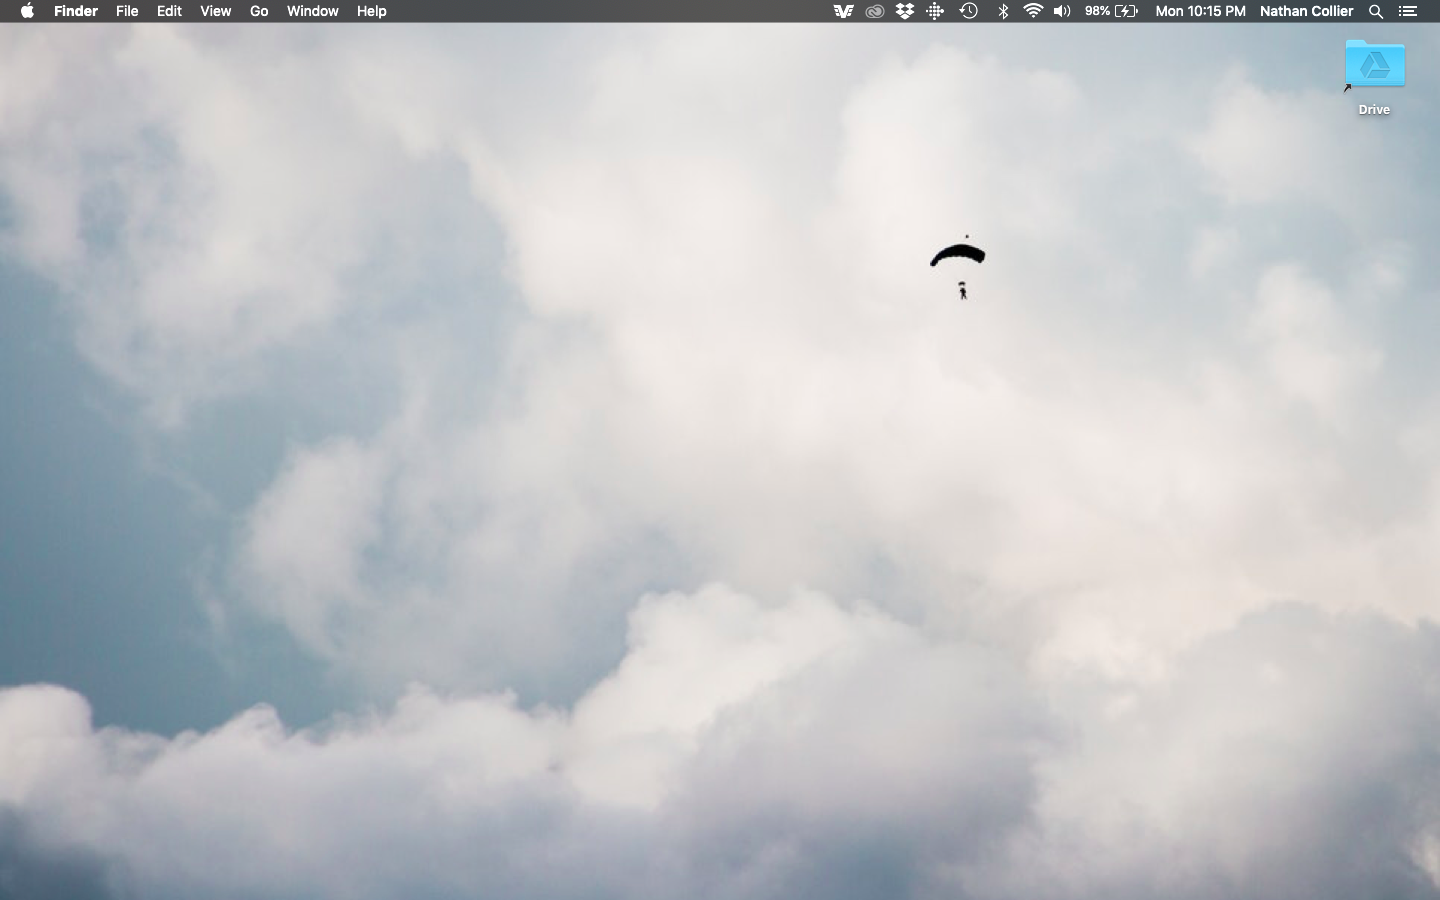 Clean Desktop